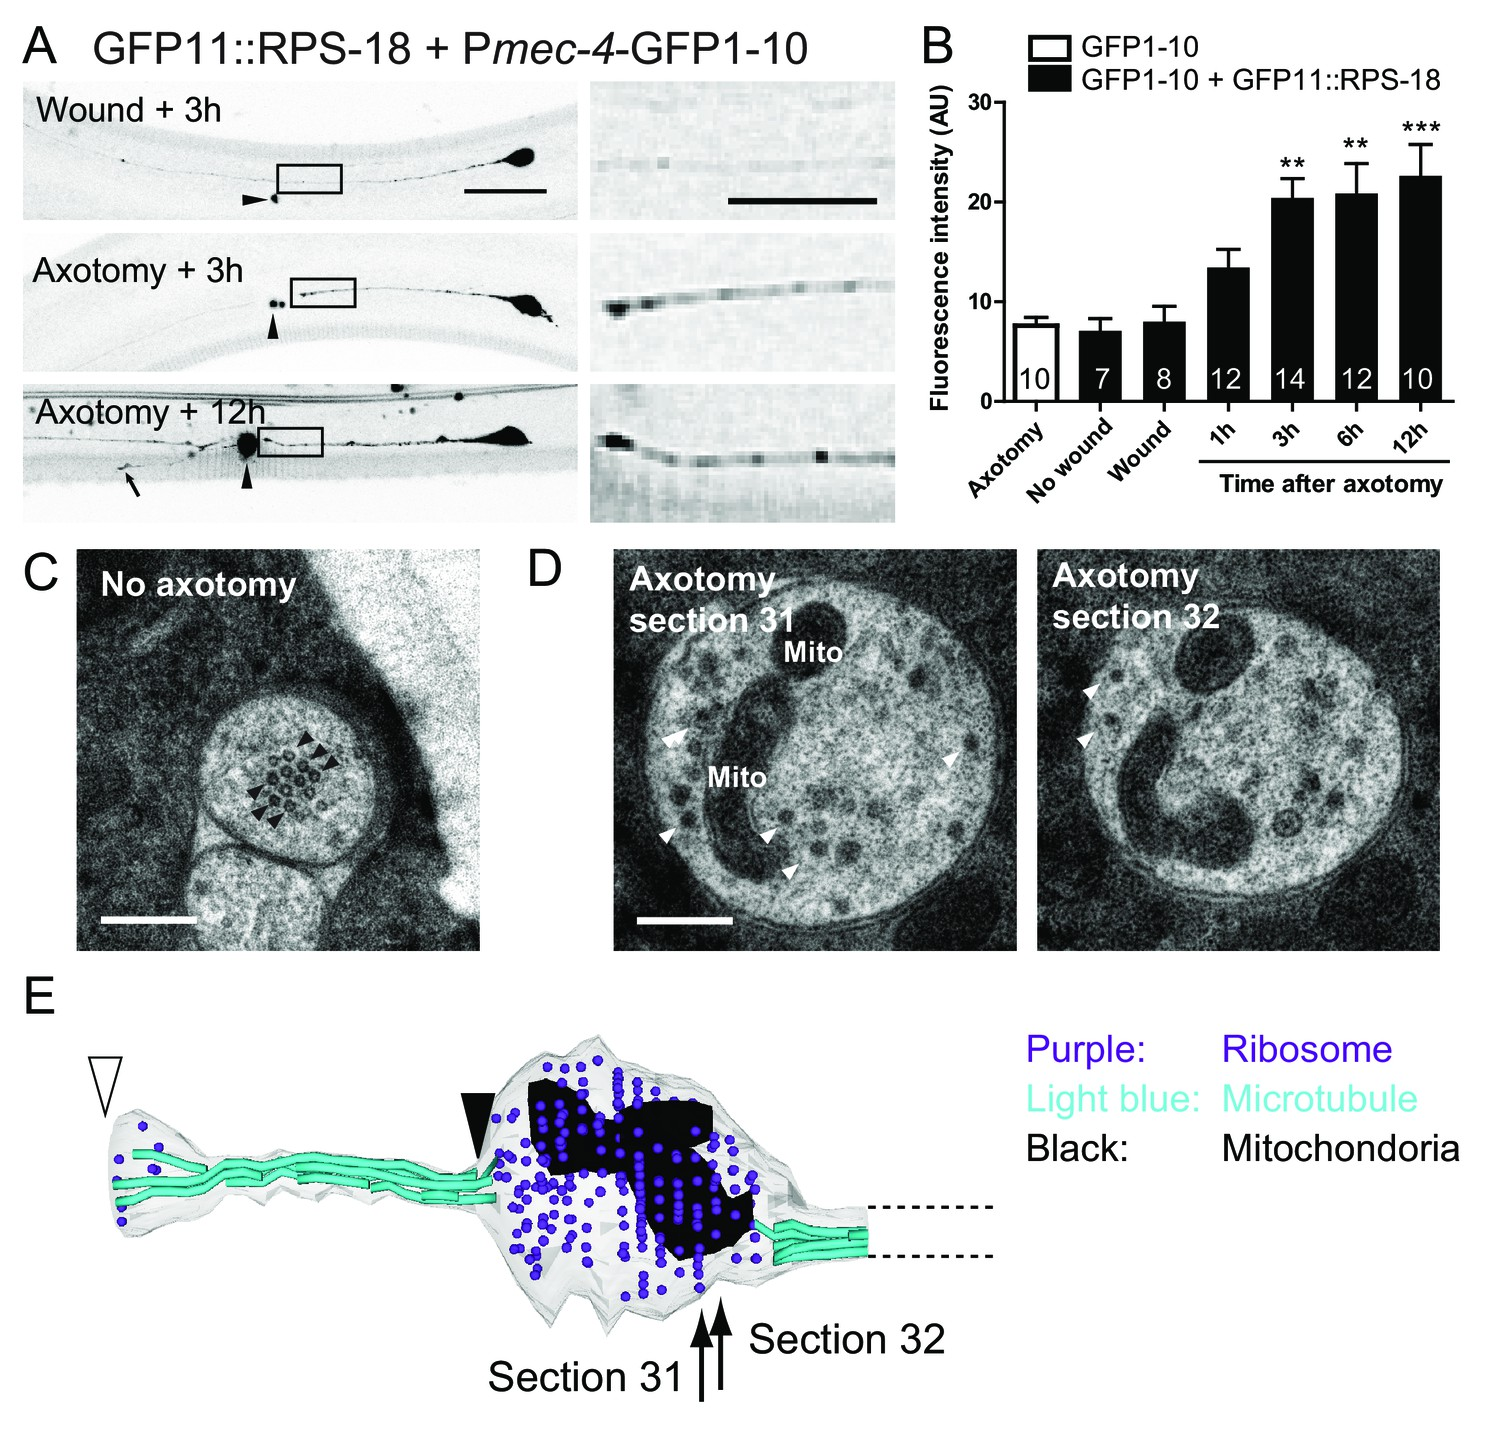 Microtubule Dependent Ribosome Localization In C Elegans Neurons Obviously The Circle With M It Is Fan Motor Ribosomes Accumulate At Tip Of Proximal Axons After Axon Injury Mechanosensory